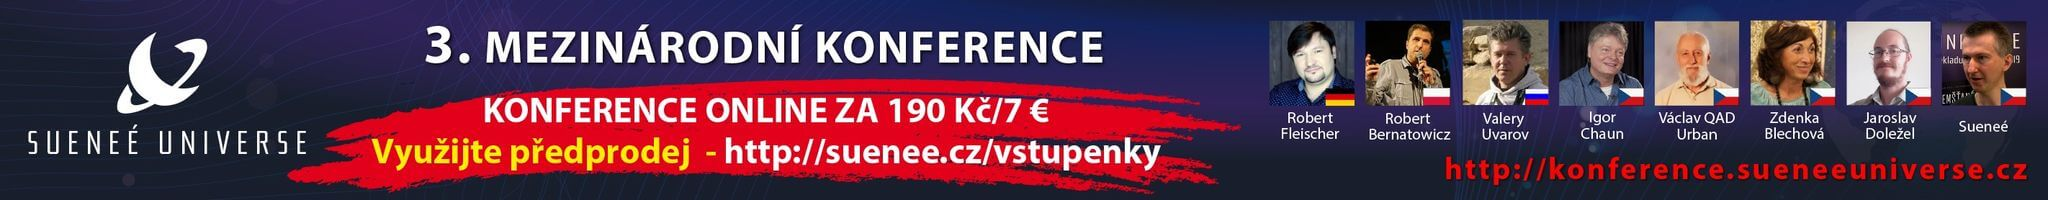 3. Internationale Konferenz Sueneé Universe